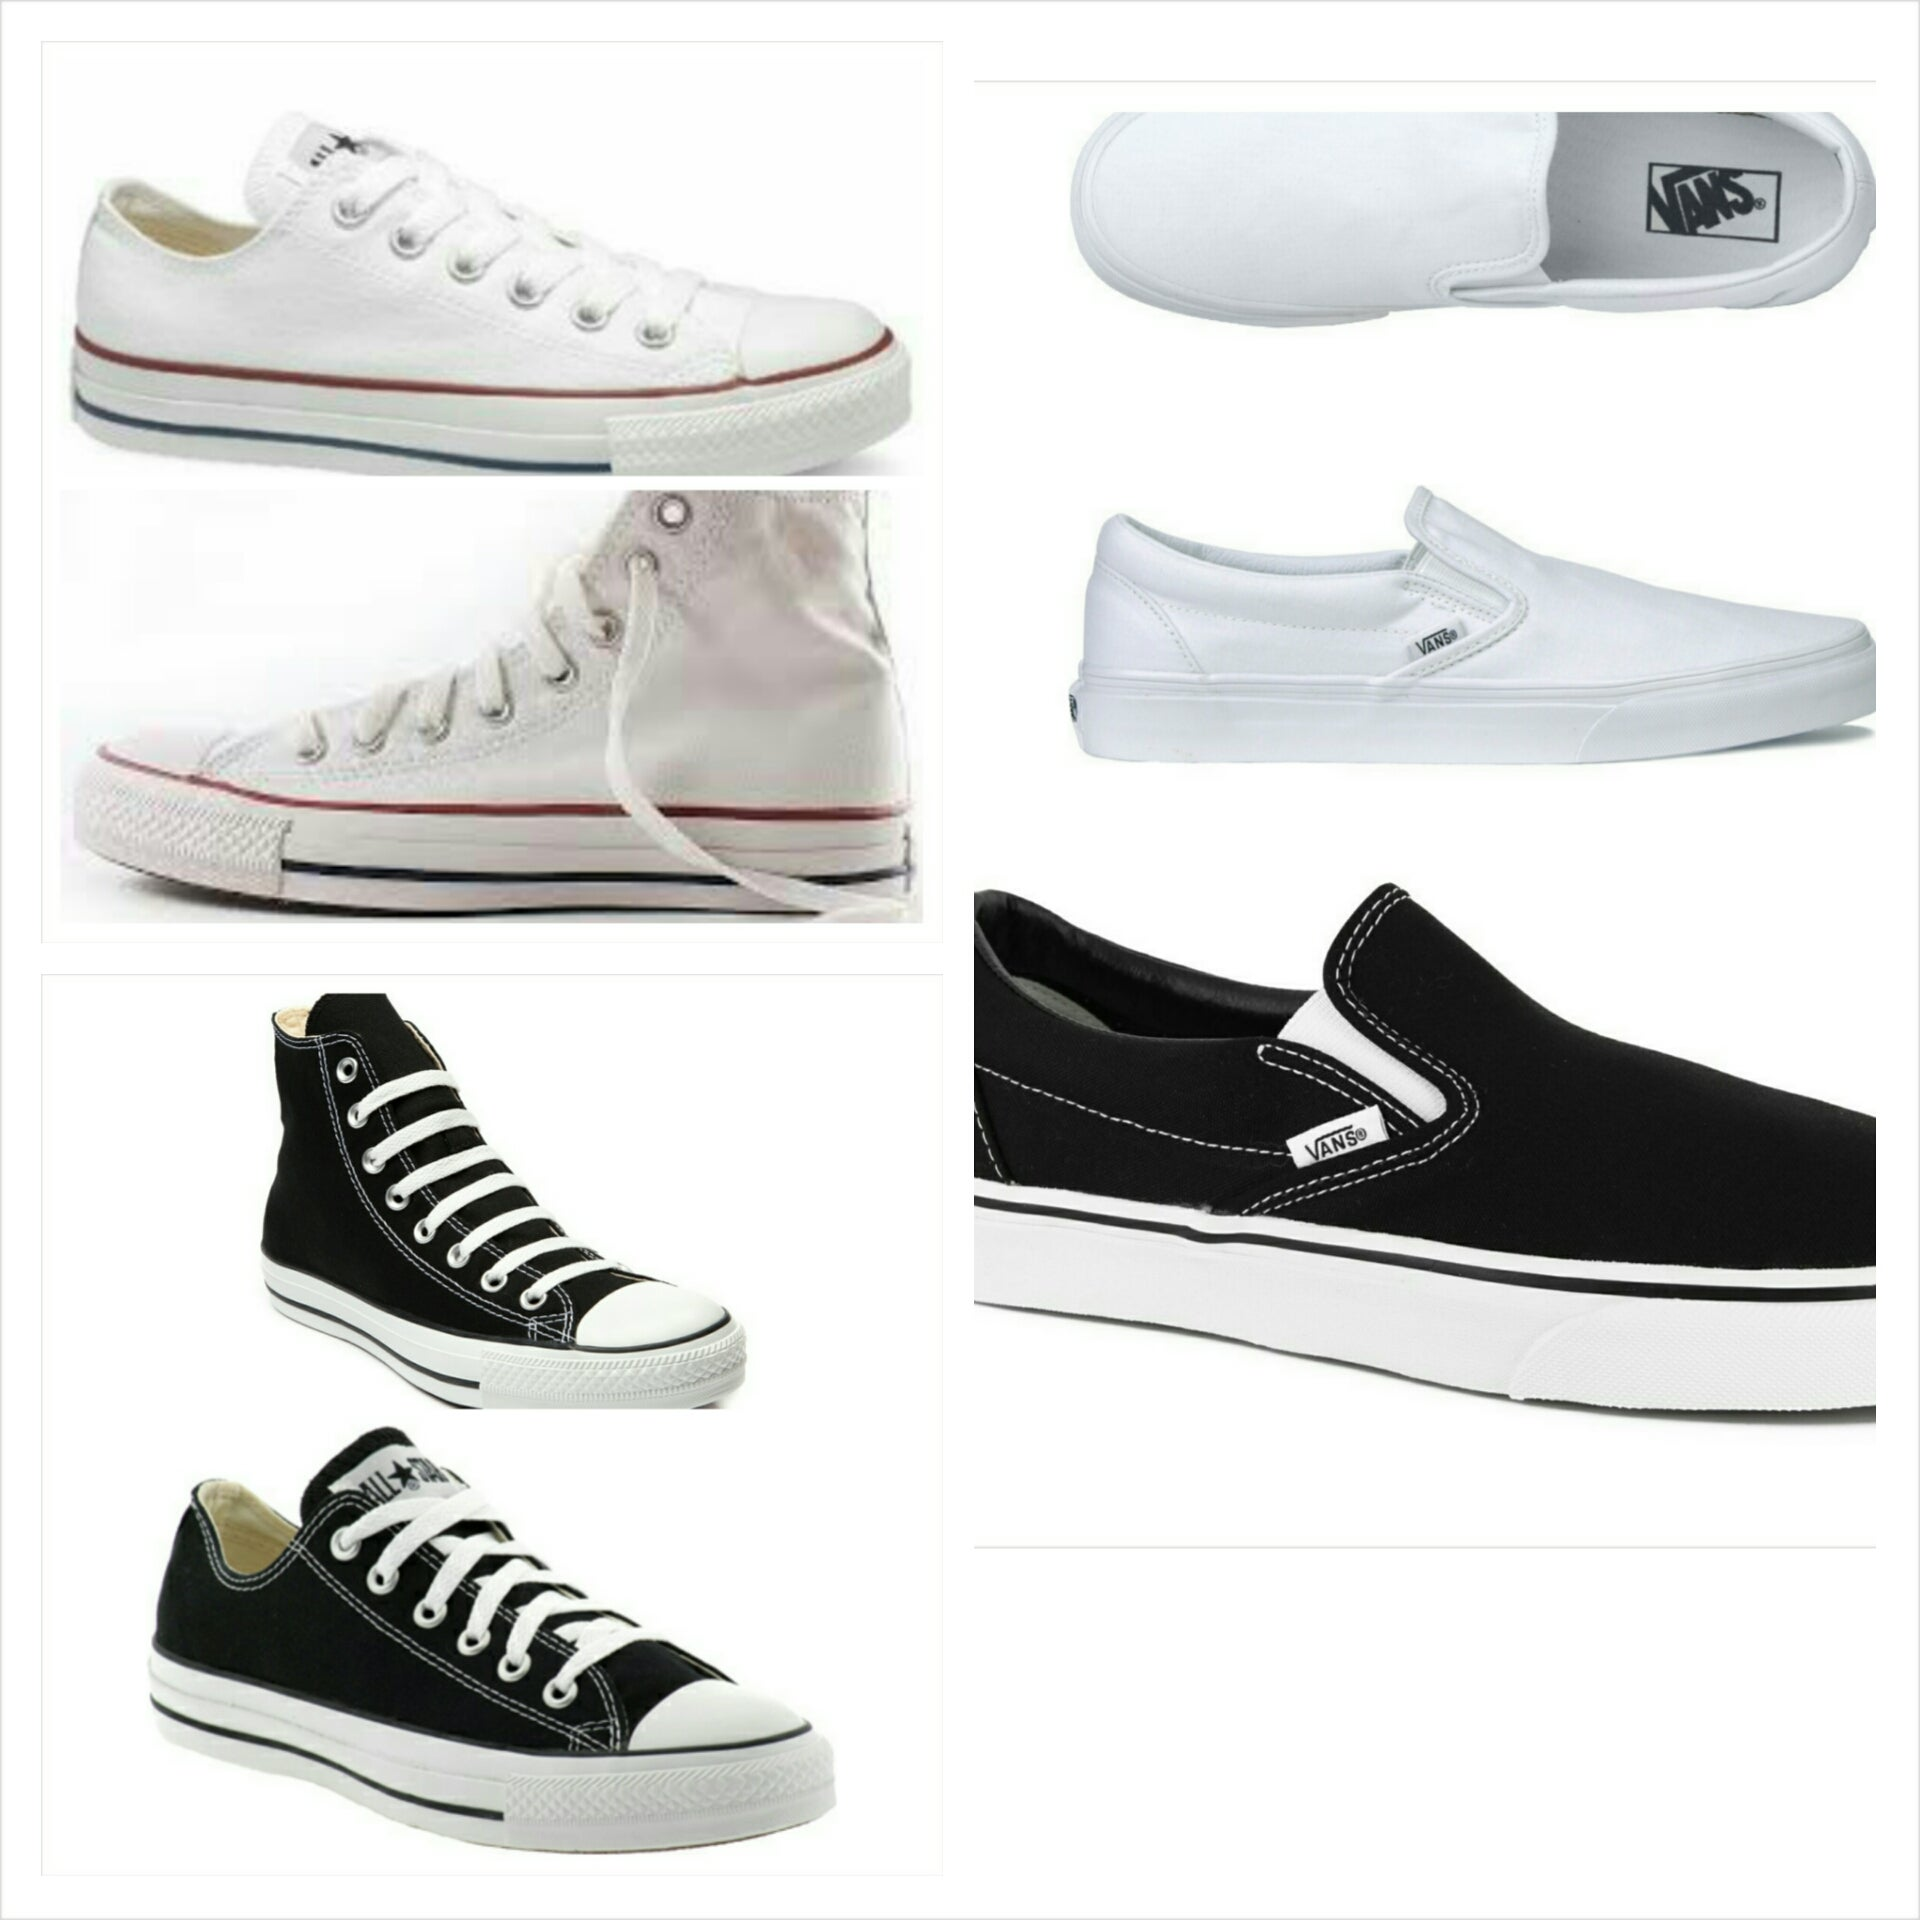 converse vs vans. image of custom converse or vans vs